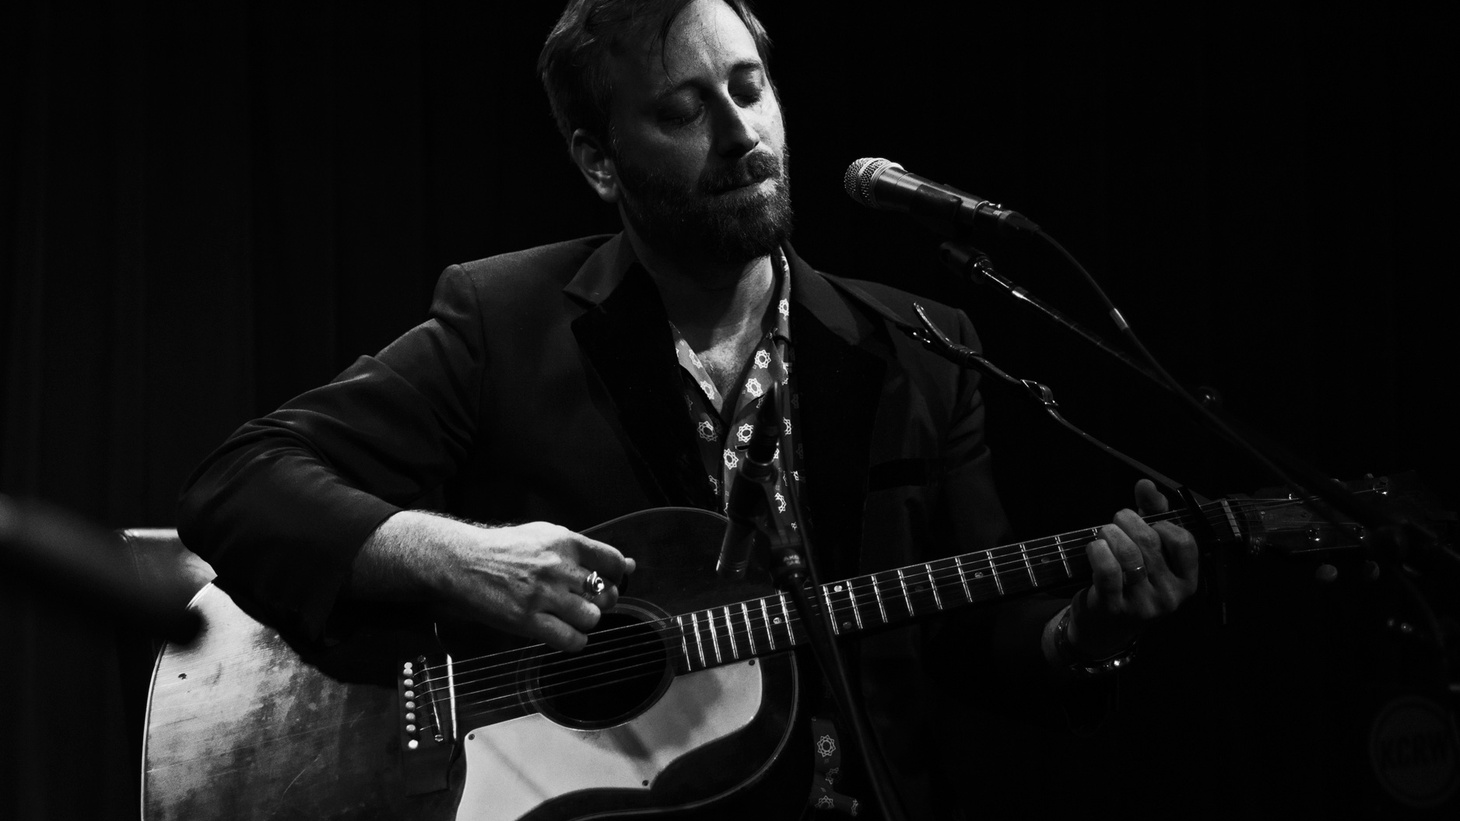 Dan Auerbach keeps busy. As the frontman for the Black Keys, member of the Arcs, and the Grammy Award-winning producer for a wide variety of artists, he finally found time to record first solo album in eight years. (10am)